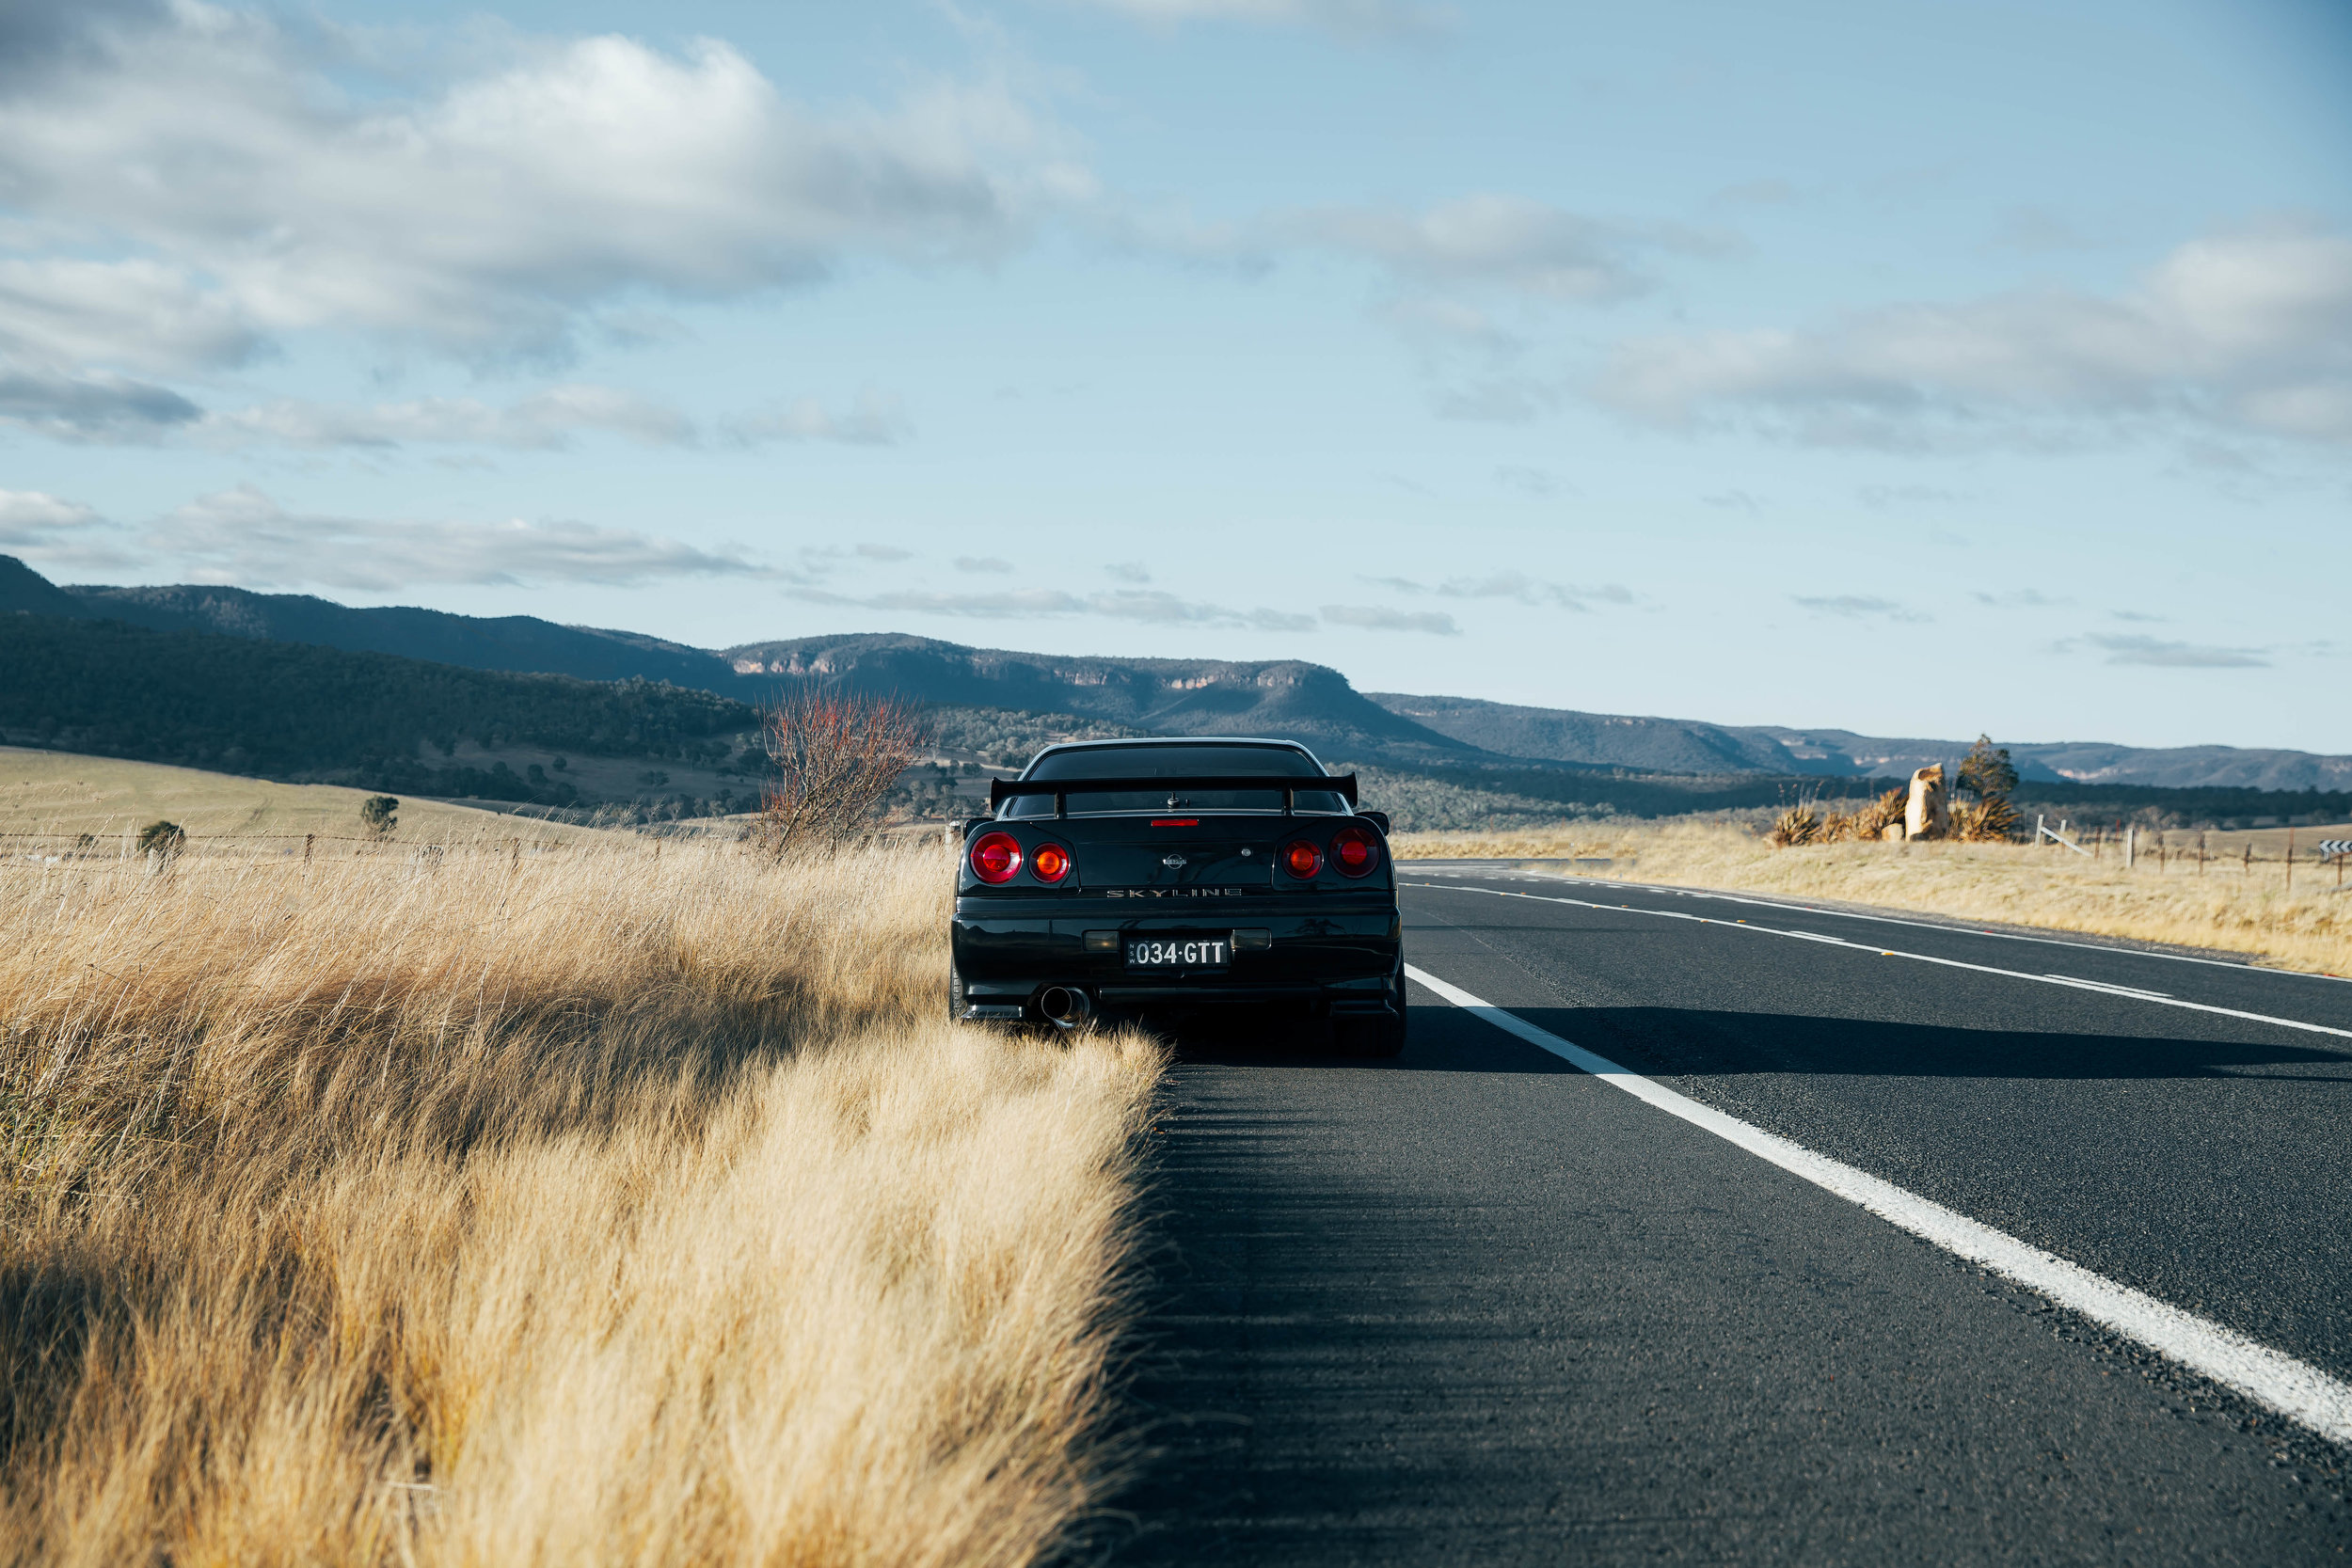 Another shot of my R34 taken at Oberon for my look book. I'm all about the blue and earth tones. Photos like this just make me want to get out and drive!